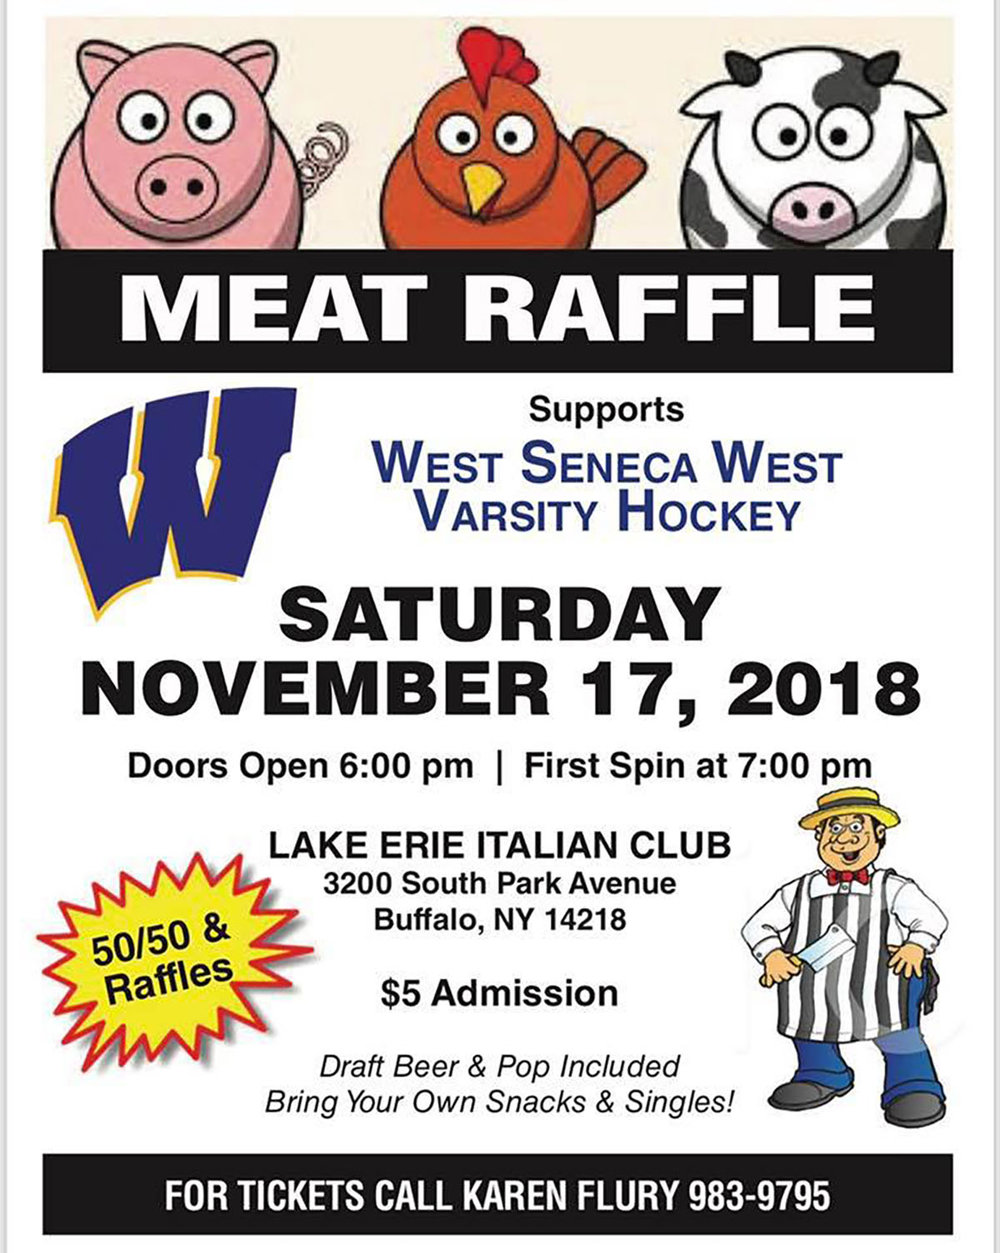 WSW Hockey Meat Raffle.jpg